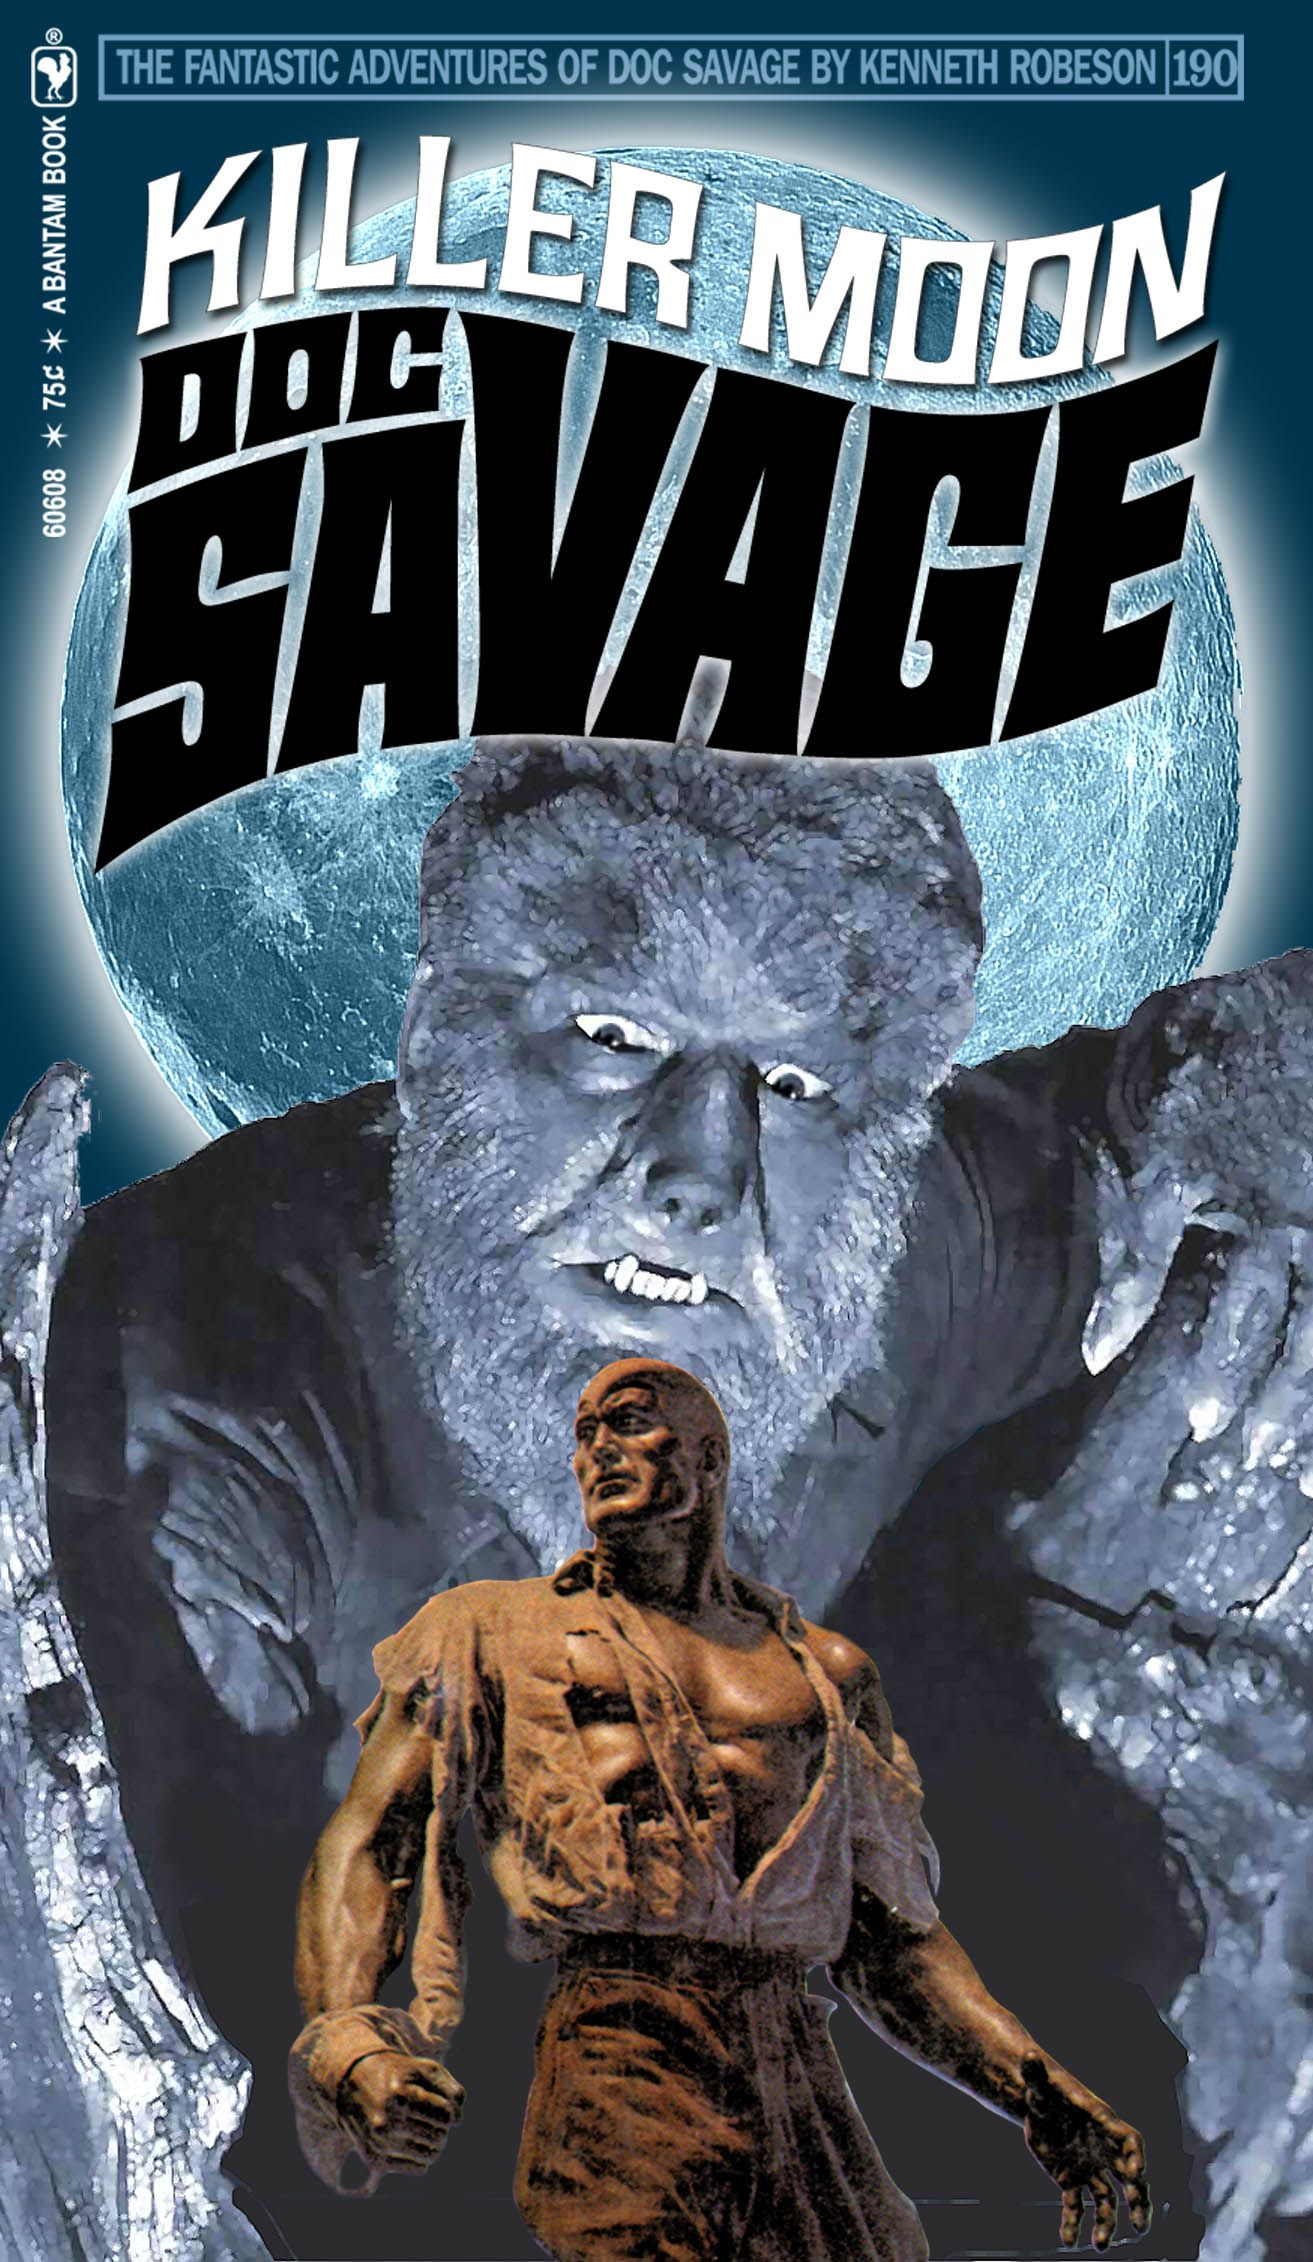 doc savage fantasy covers | Return to the Doc Savage Fantasy Cover Gallery